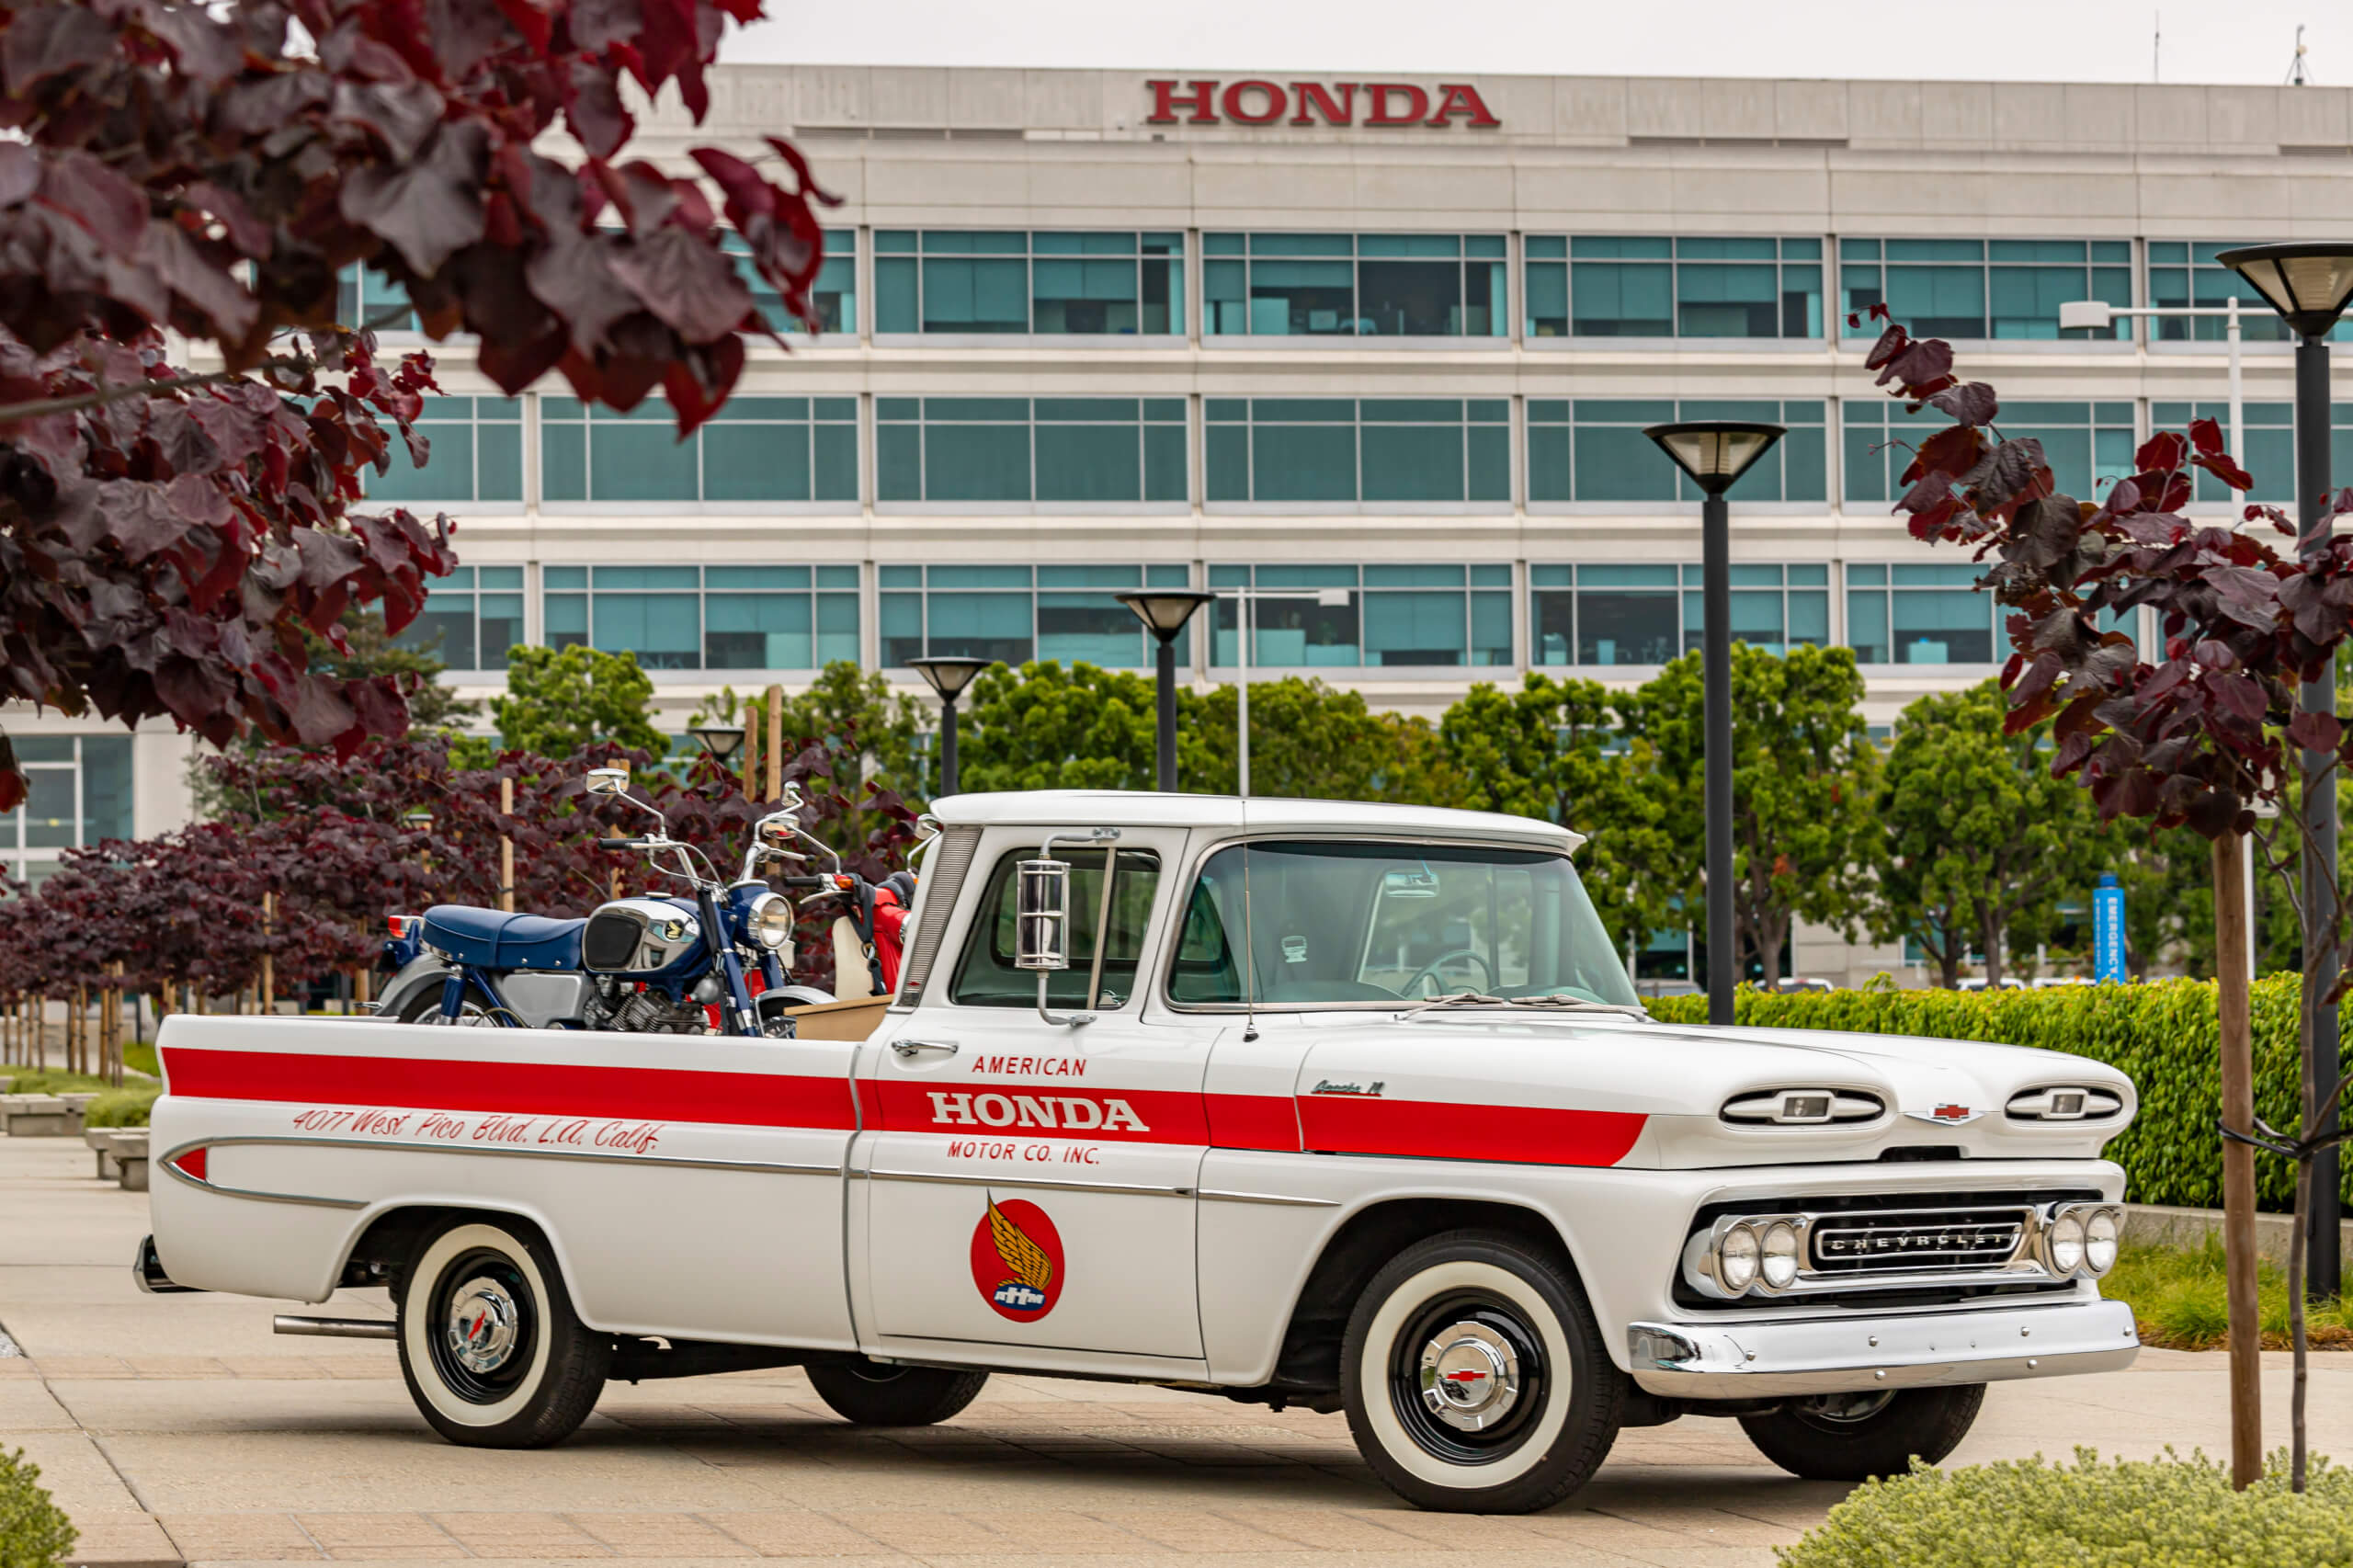 Honda Rebuilds a 1961 Chevrolet Apache Pickup hauling close ties to the brand's heritage